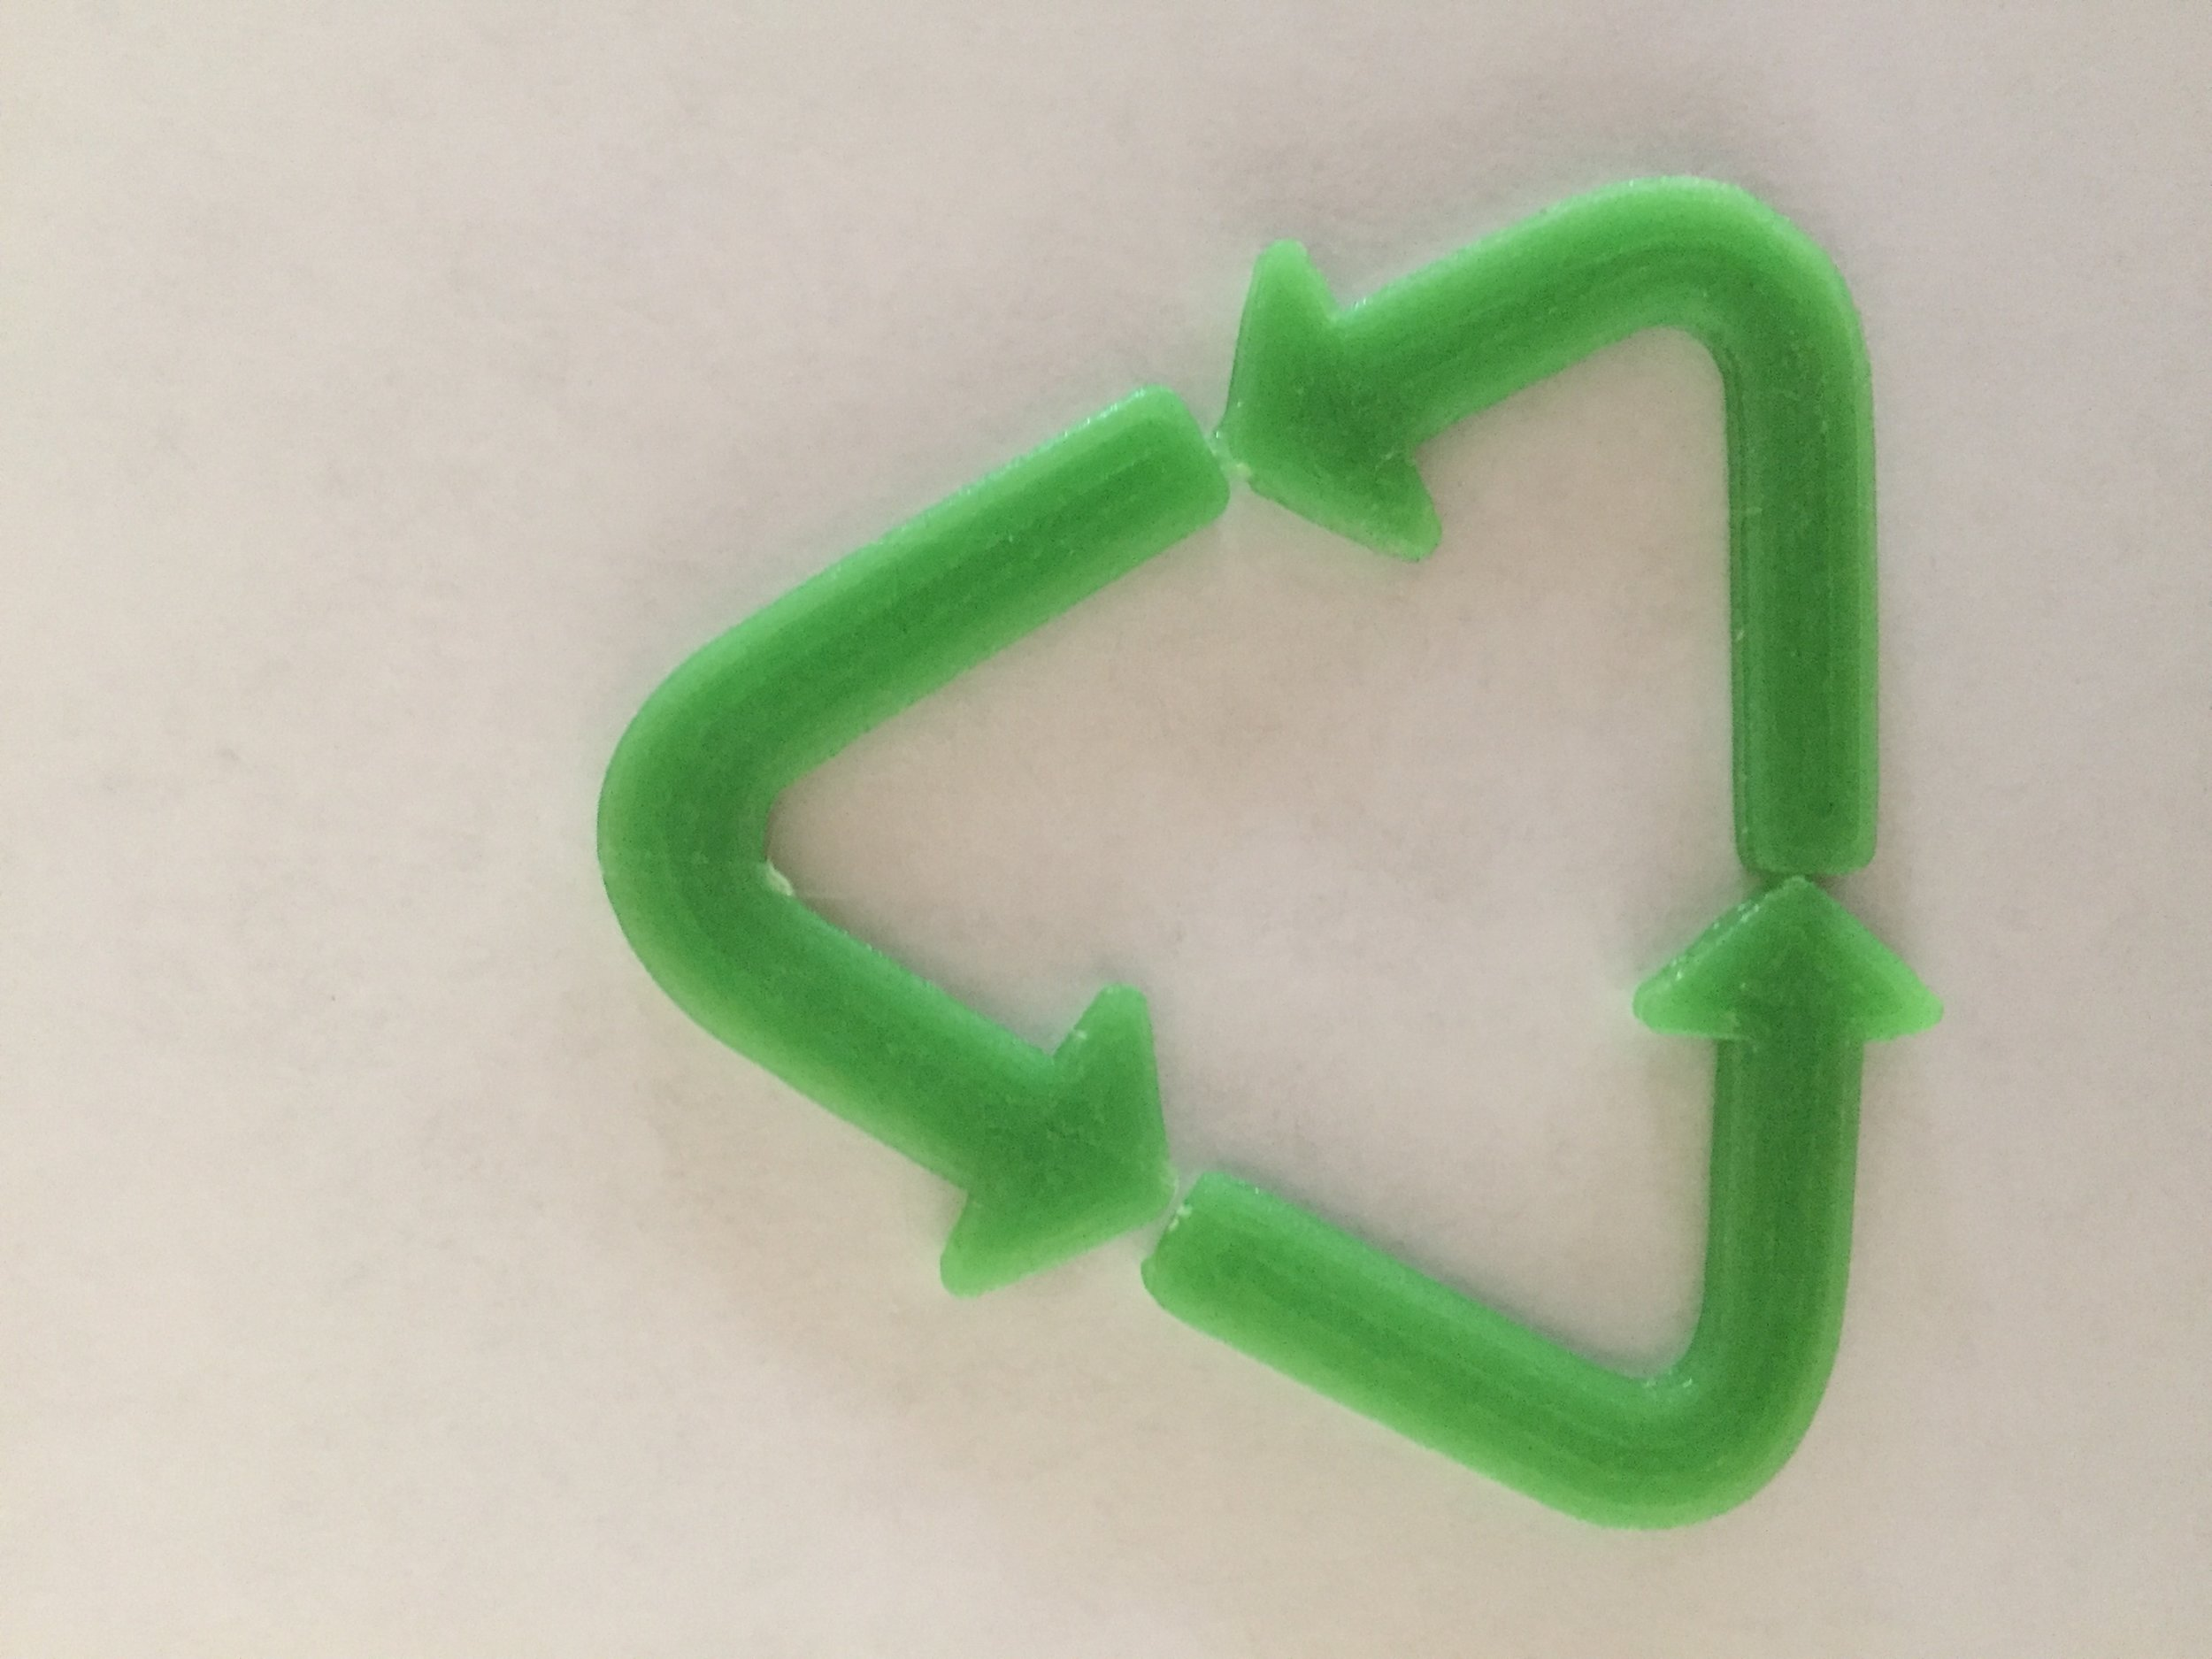 3D printed plastic in house using recycled plastic feedstock.